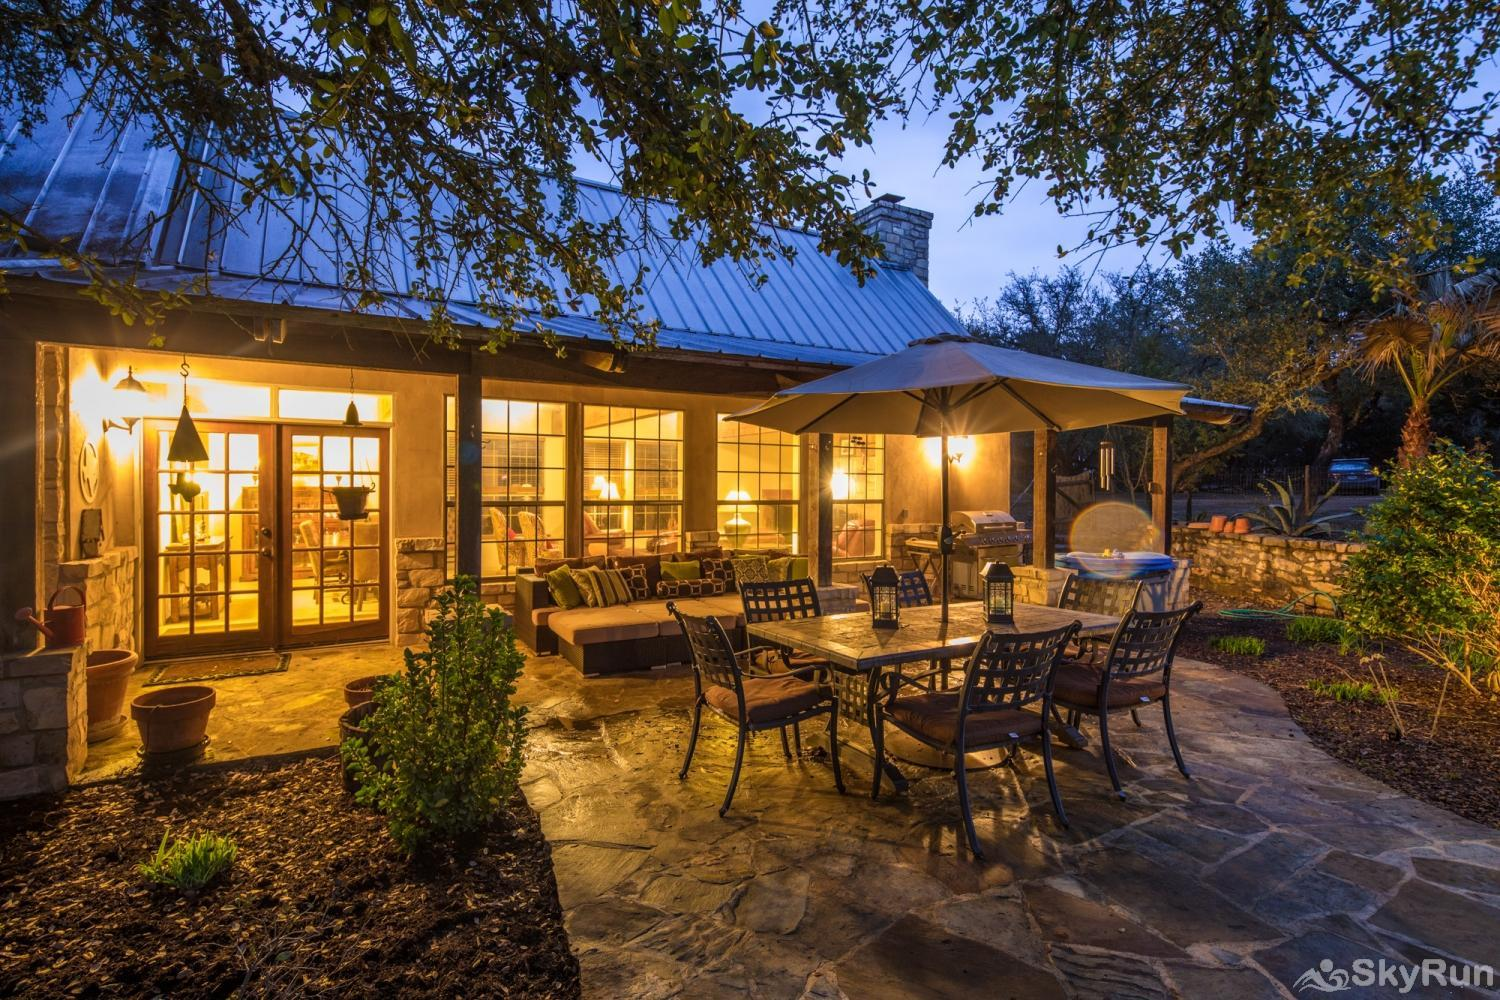 ROCK 'N' WOOD Book Your Wimberley Getaway with SkyRun Today!